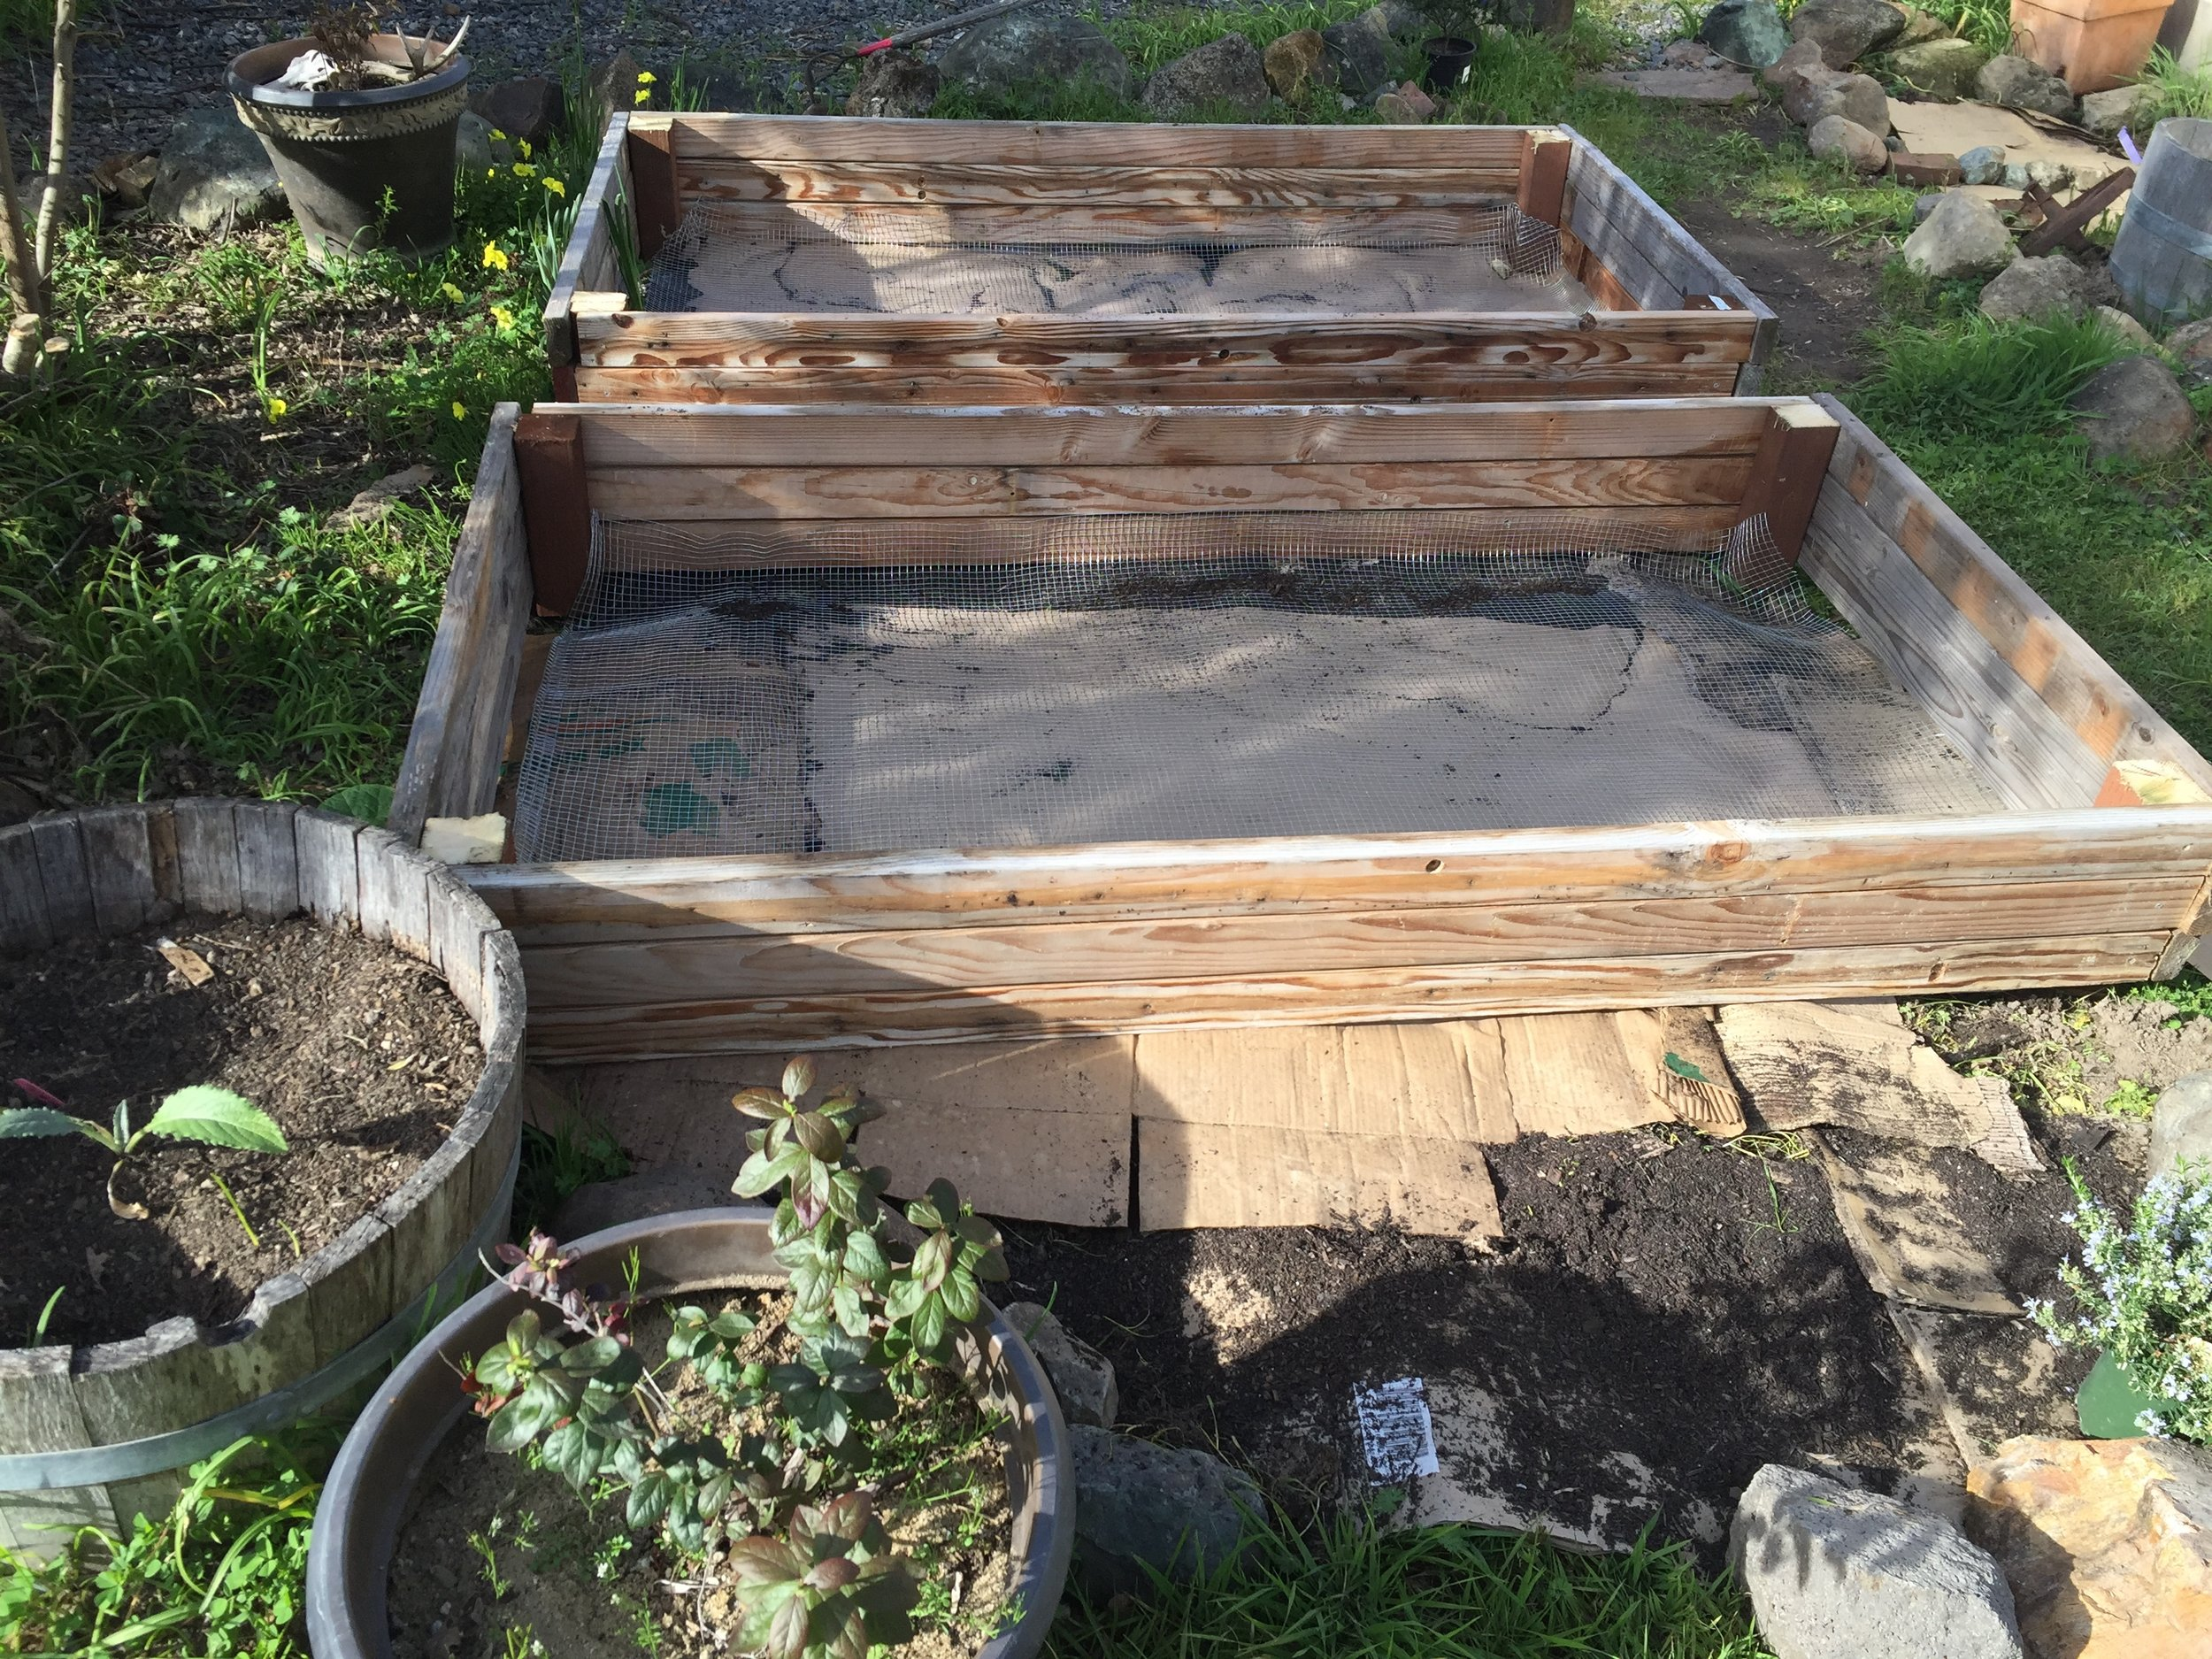 Garden boxes build from reclaimed wood. Sheet mulching and installation. Sebastopol, 2017